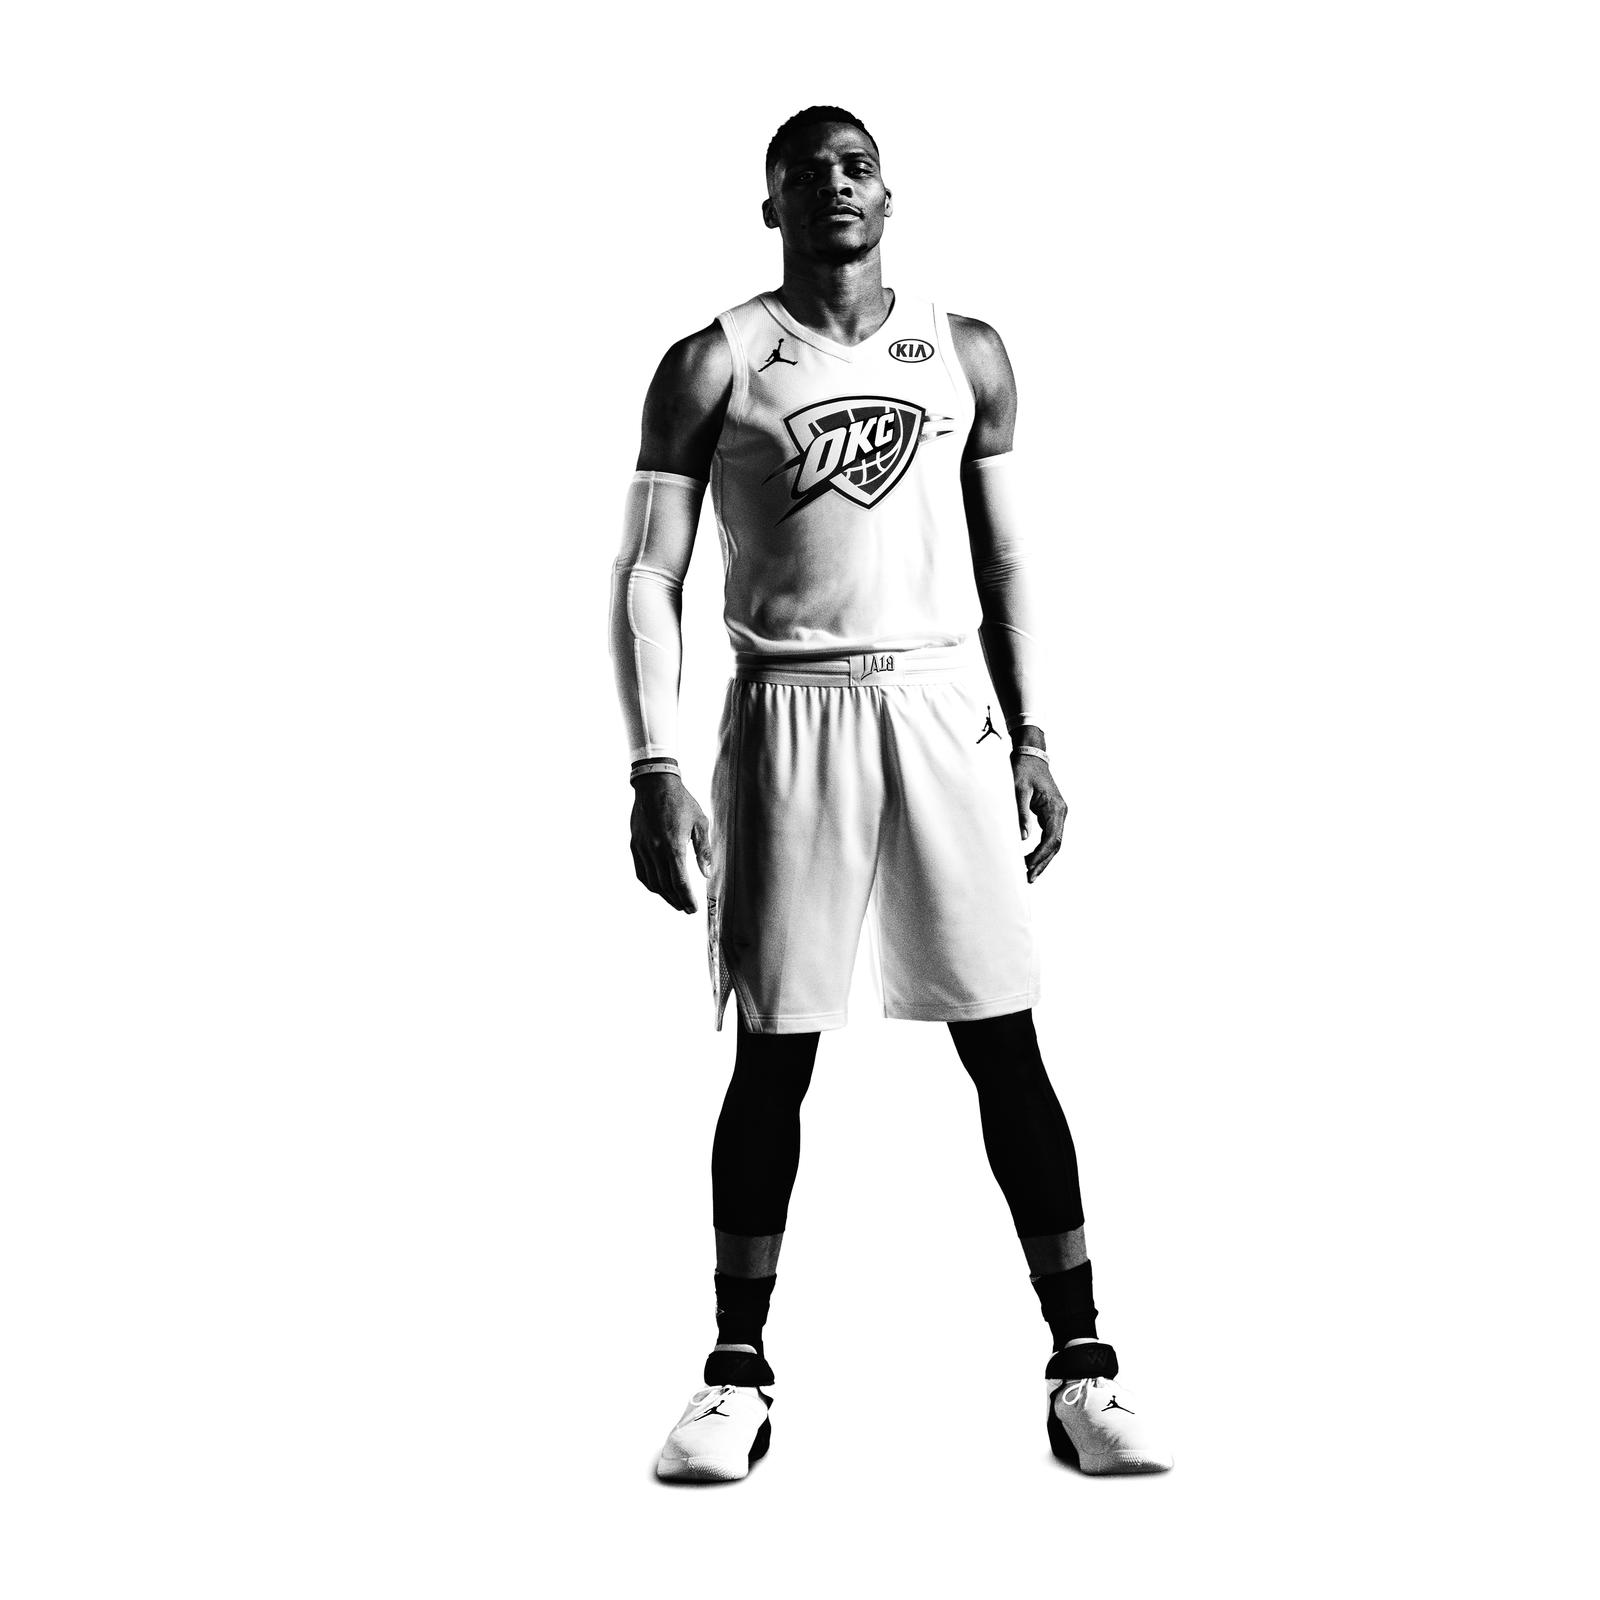 a82115212 Introducing the First-Ever Jordan Brand NBA All-Star Edition Uniforms 36